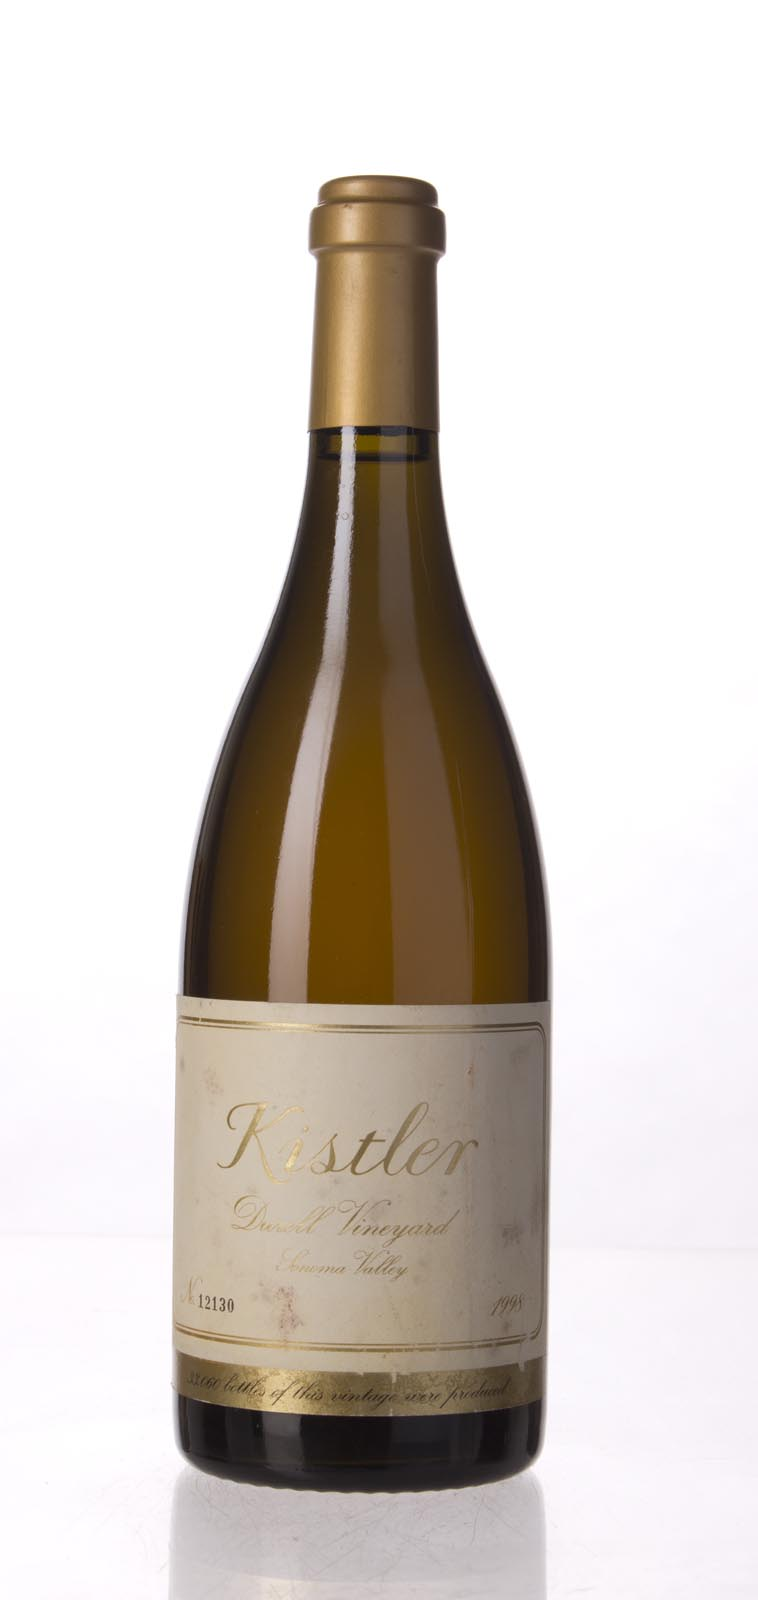 Kistler Chardonnay Durell Vineyard 1998, 750mL (ST92, WS92) from The BPW - Merchants of rare and fine wines.